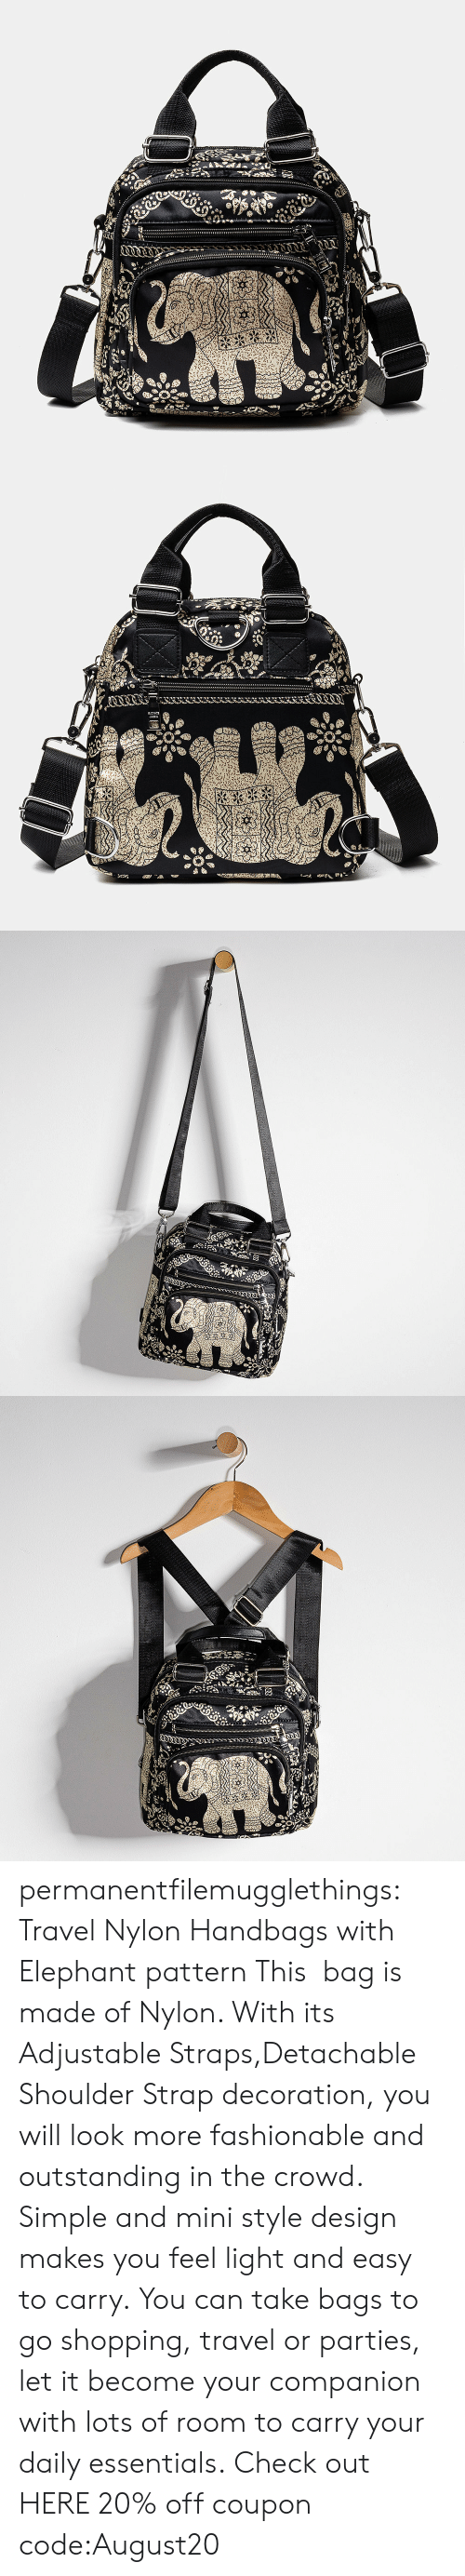 Elephant: permanentfilemugglethings: Travel Nylon Handbags with Elephant pattern This  bag is made of Nylon. With its Adjustable Straps,Detachable Shoulder Strap decoration, you will look more fashionable and outstanding in the crowd. Simple and mini style design makes you feel light and easy to carry. You can take bags to go shopping, travel or parties, let it become your companion with lots of room to carry your daily essentials. Check out HERE 20% off coupon code:August20